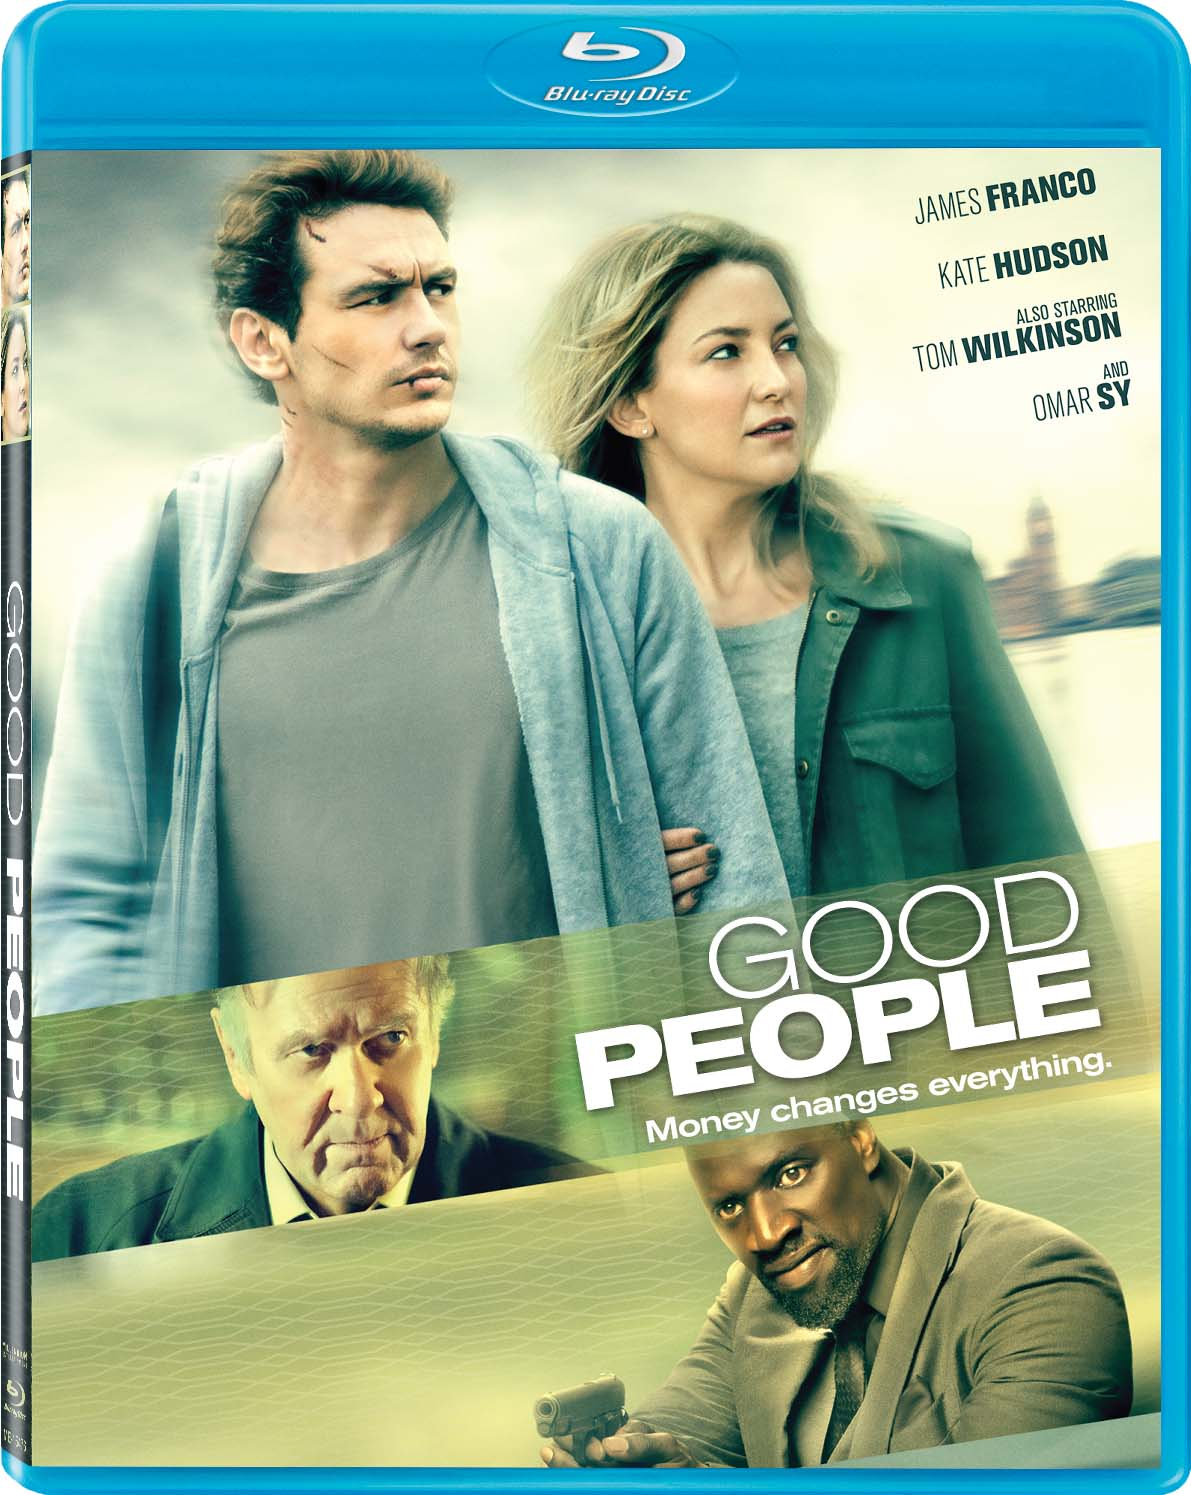 Good People Blu-ray Review